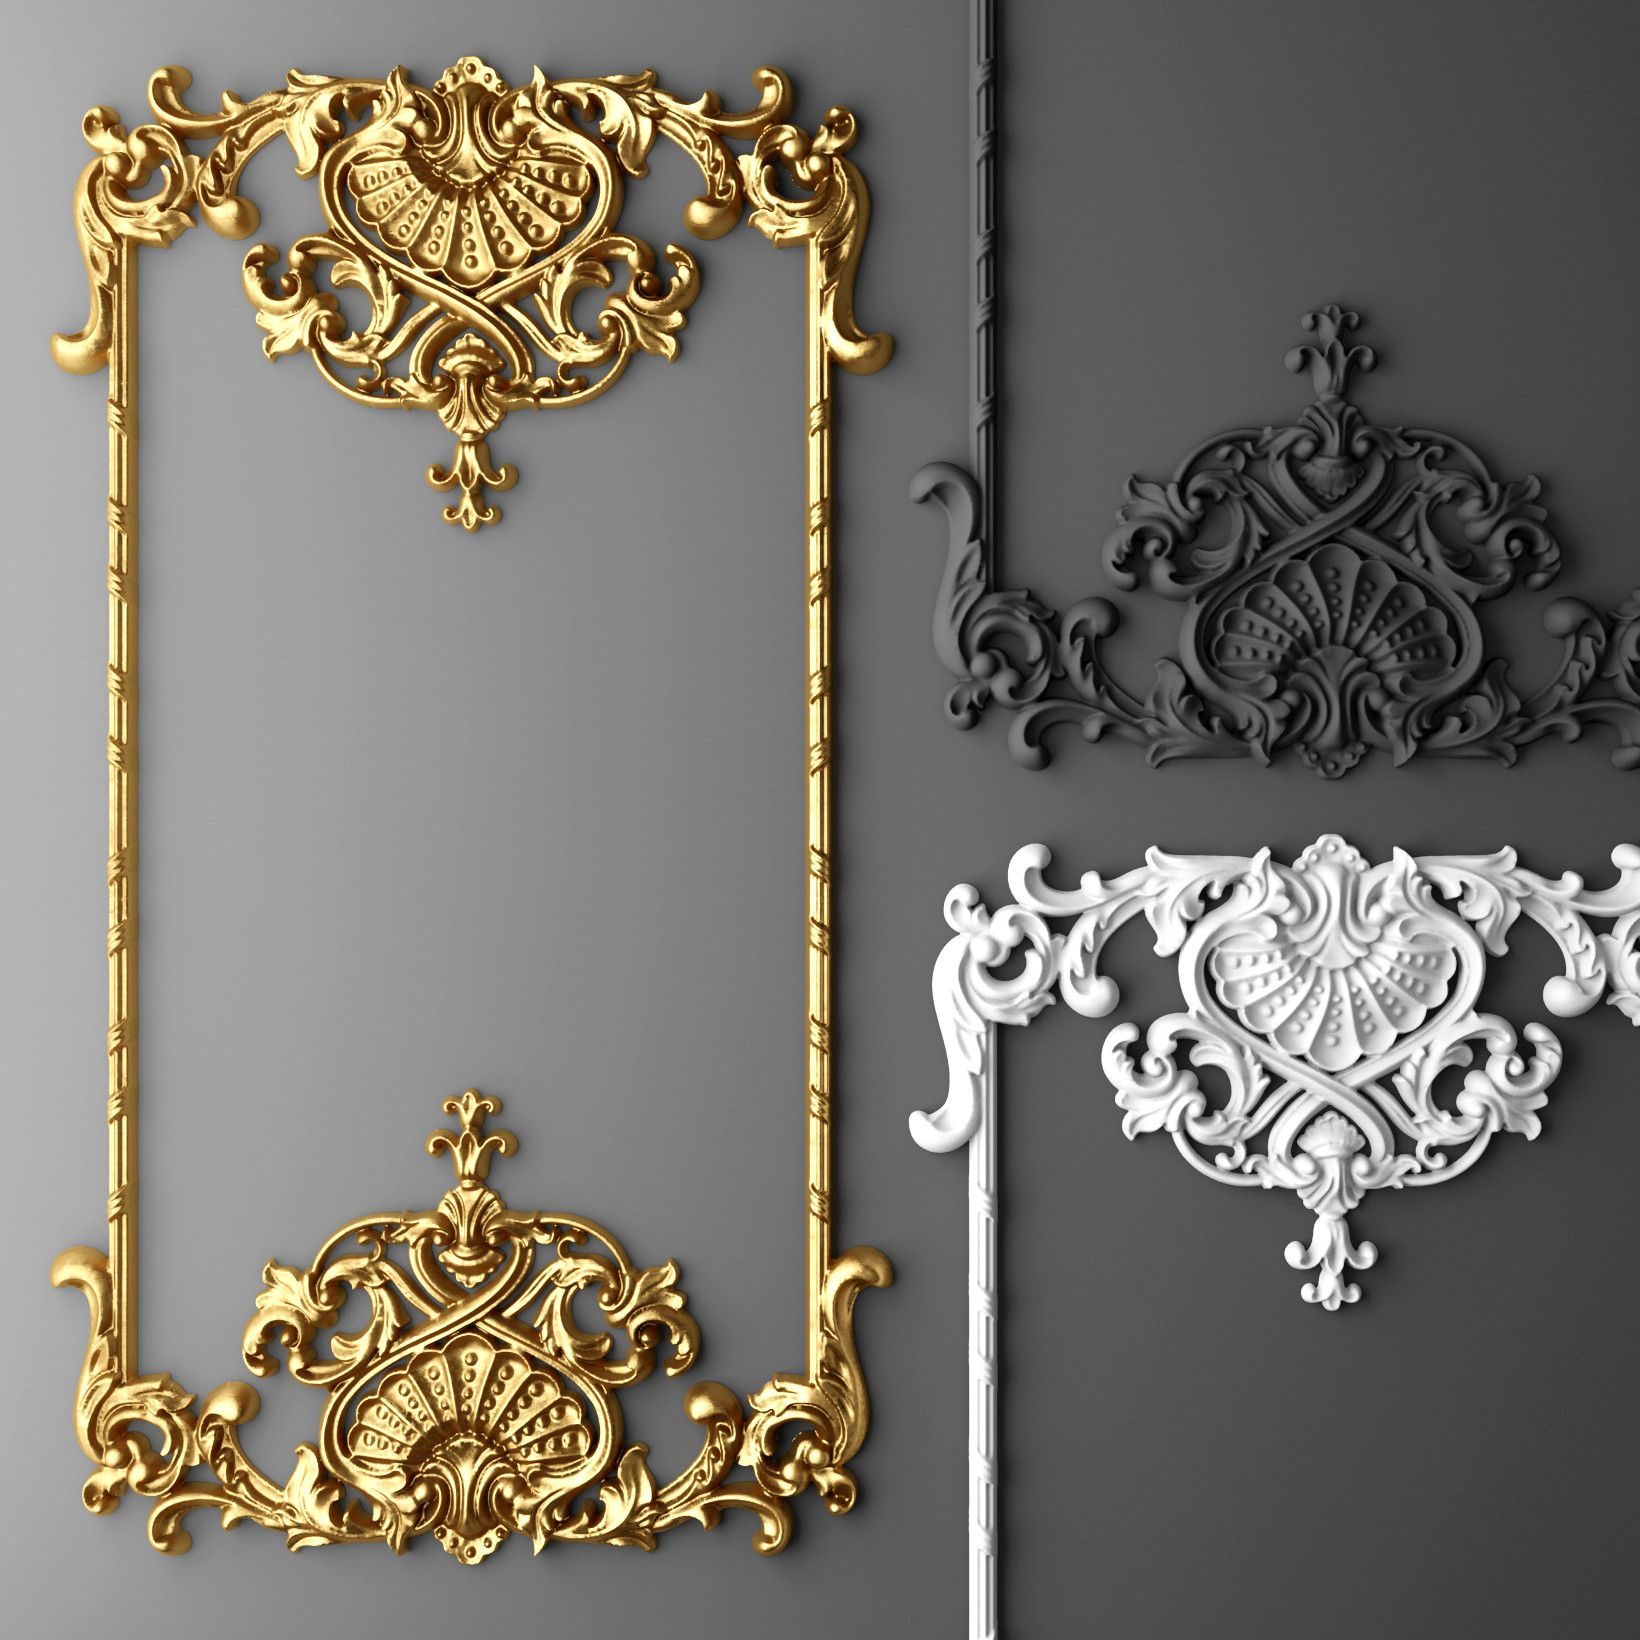 Baroque Frame 3d Max DIY Mirrors Furniture Molding